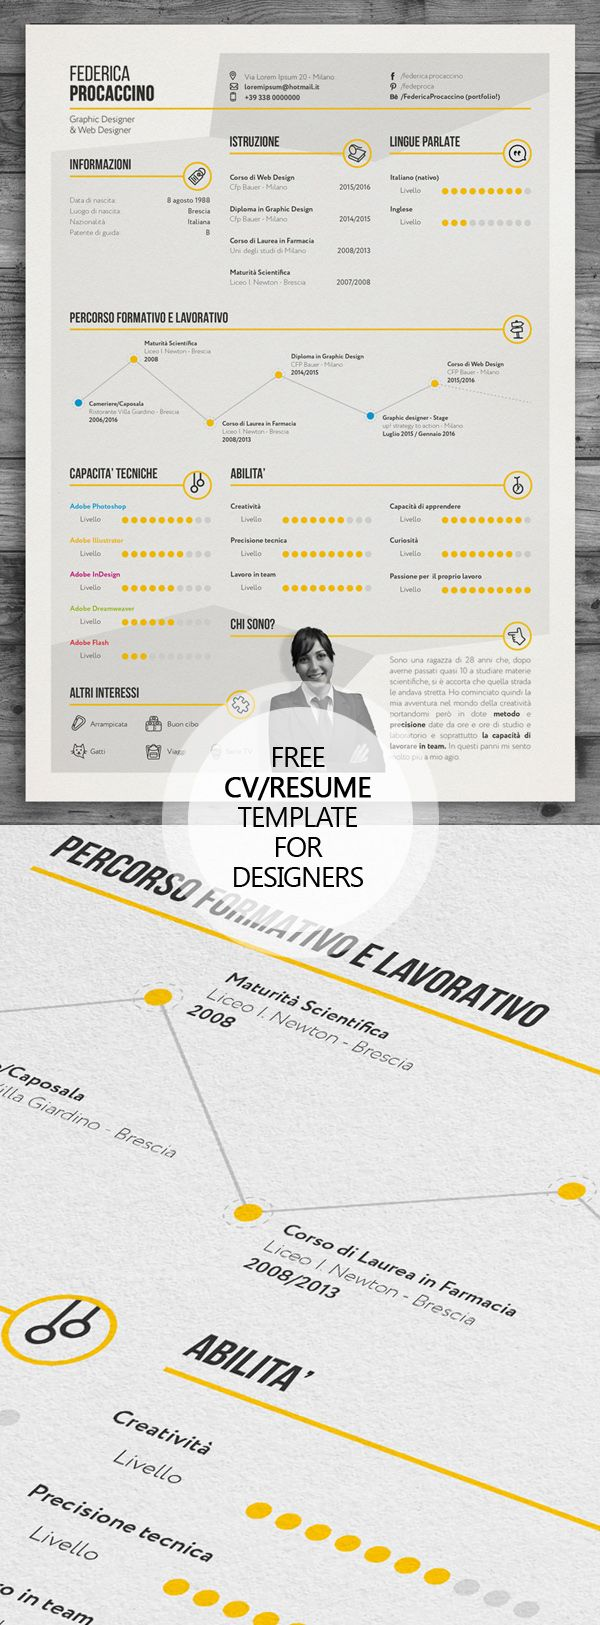 Pretty 1 Page Proposal Template Tall 10 Steps To Creating A Resume Flat 1099 Misc Form Template 12 Column Grid Template Youthful 12 Month Calendar Template Coloured2 Page Resume Too Long 425 Best Images About Creative Resume Design On Pinterest | Cool ..